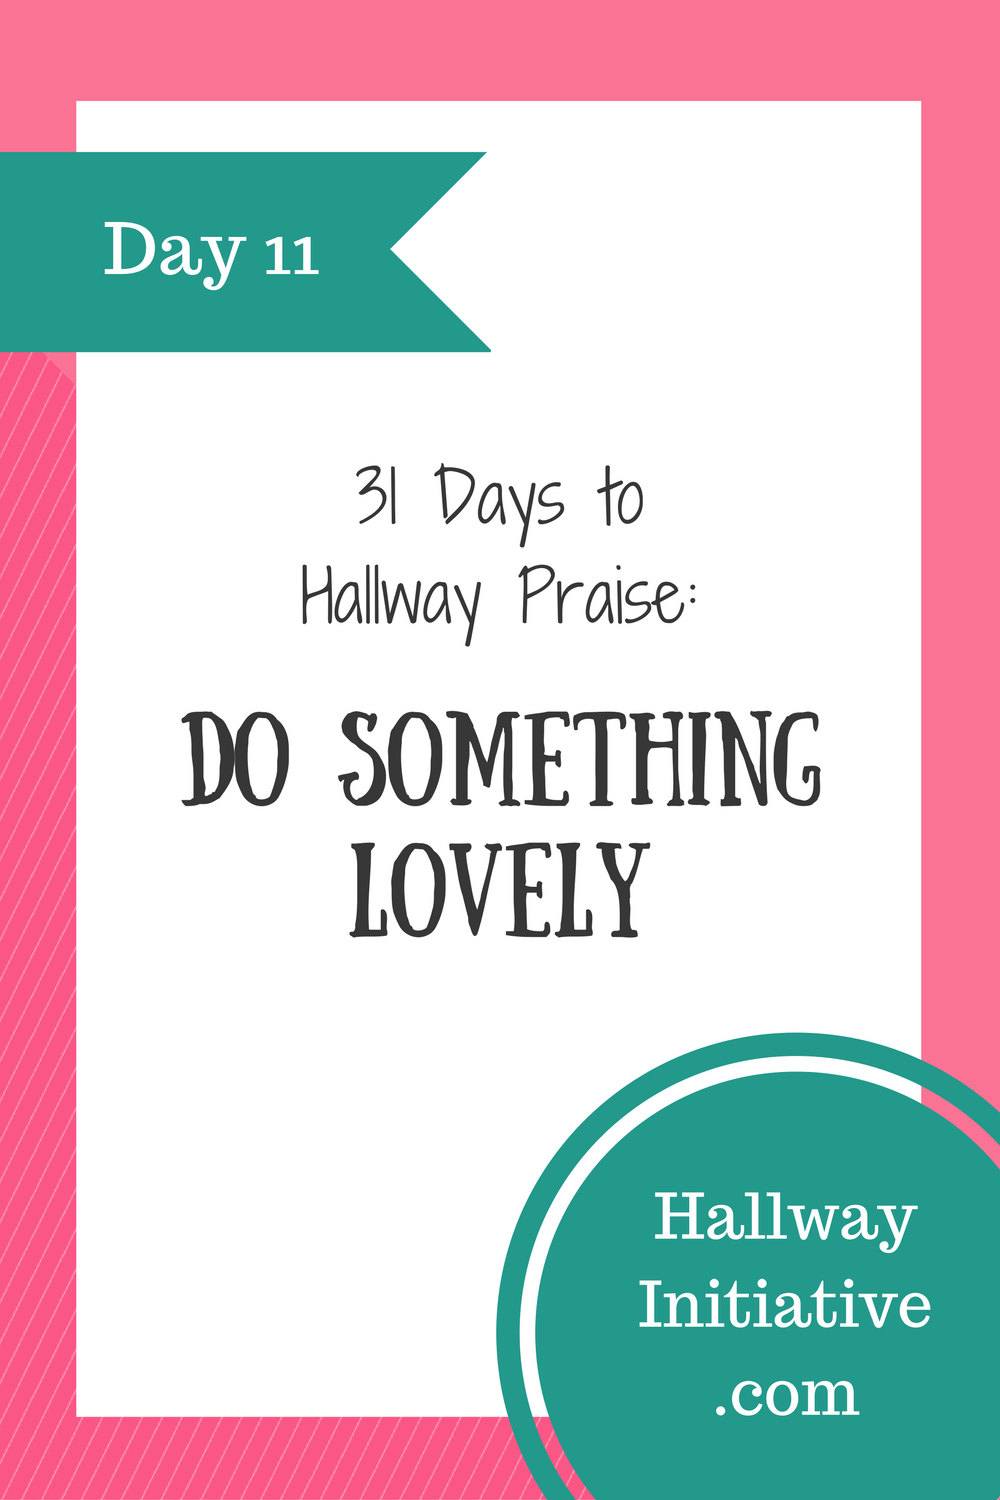 Day 11: do something lovely